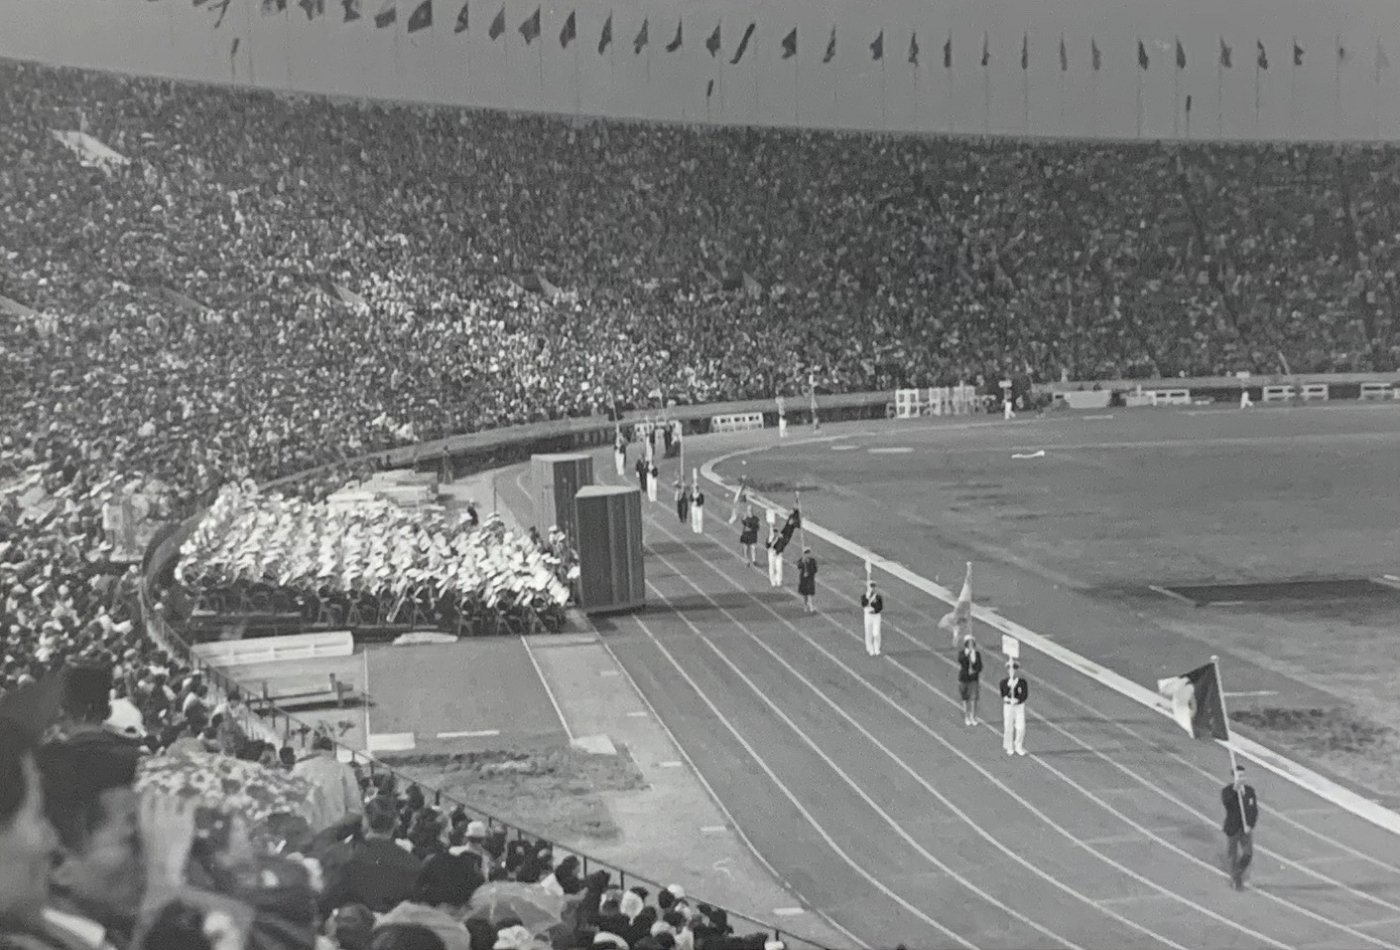 Tokyo Olympic Closing Ceremony 1964 | Source: Wikimedia Commons